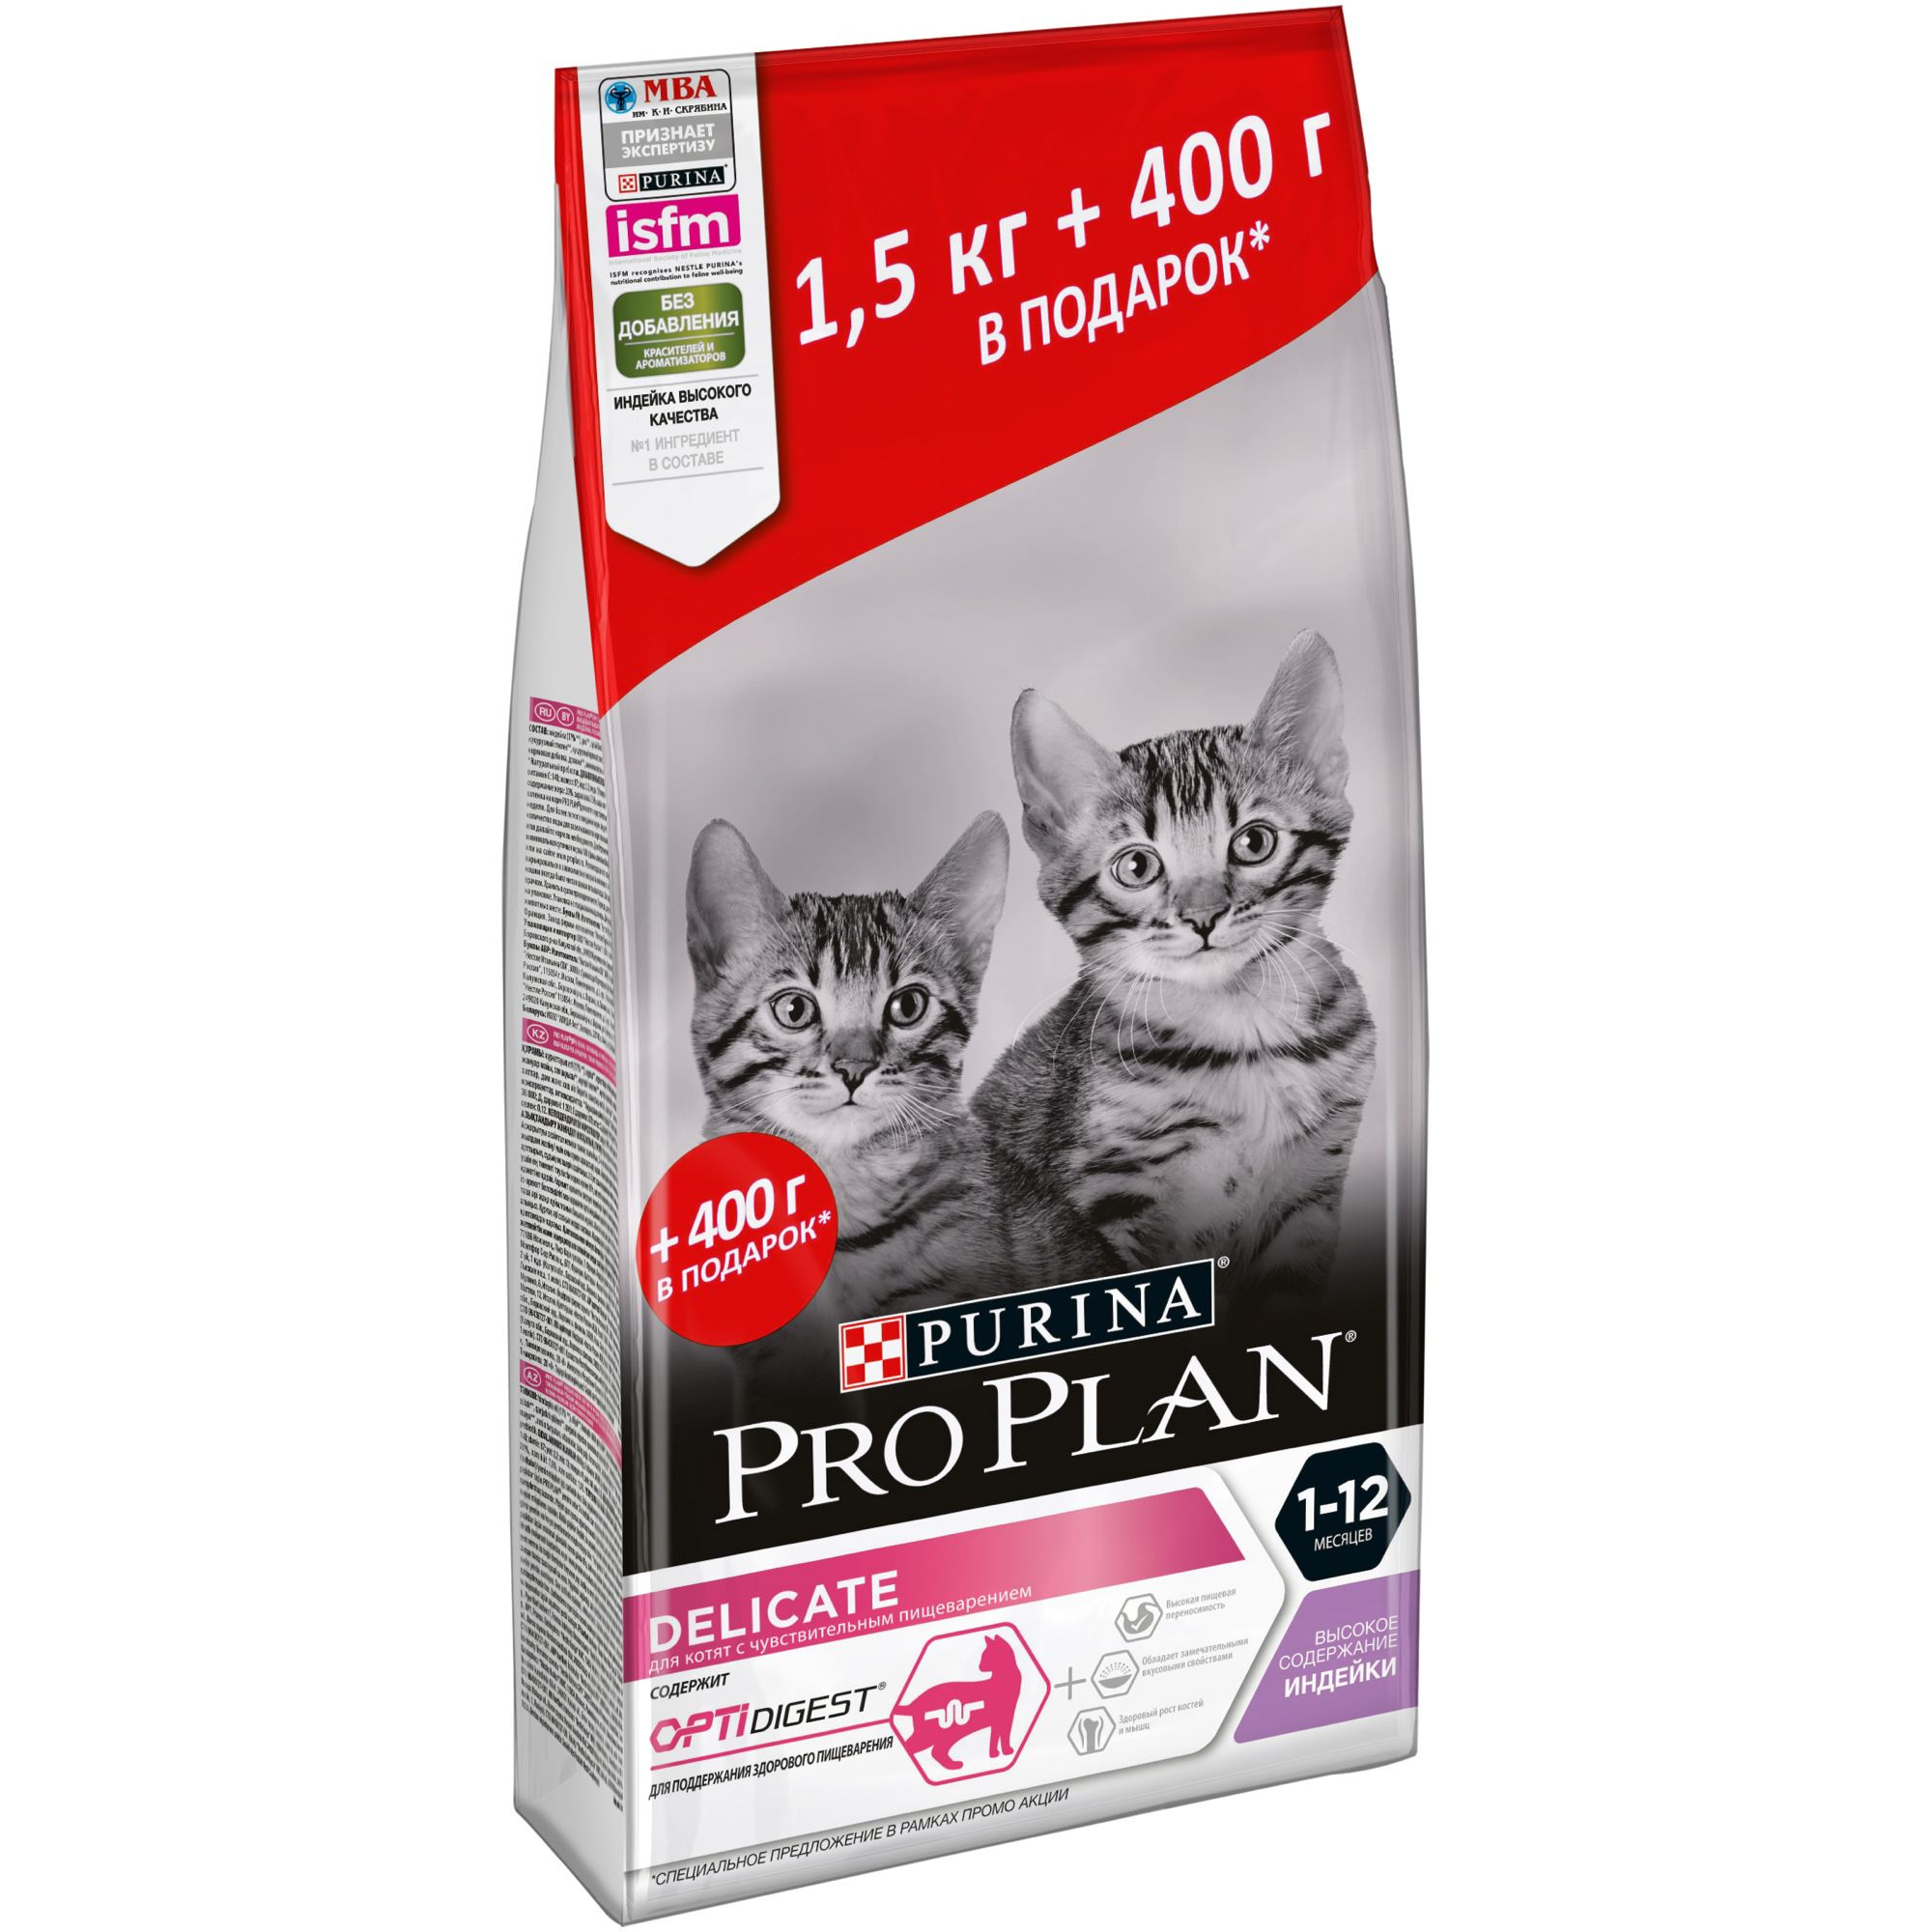 Promopak set: Pro Plan dry food for kittens with sensitive digestion and choosy for food, turkey, 6 pcs. x 1.9 kg цена